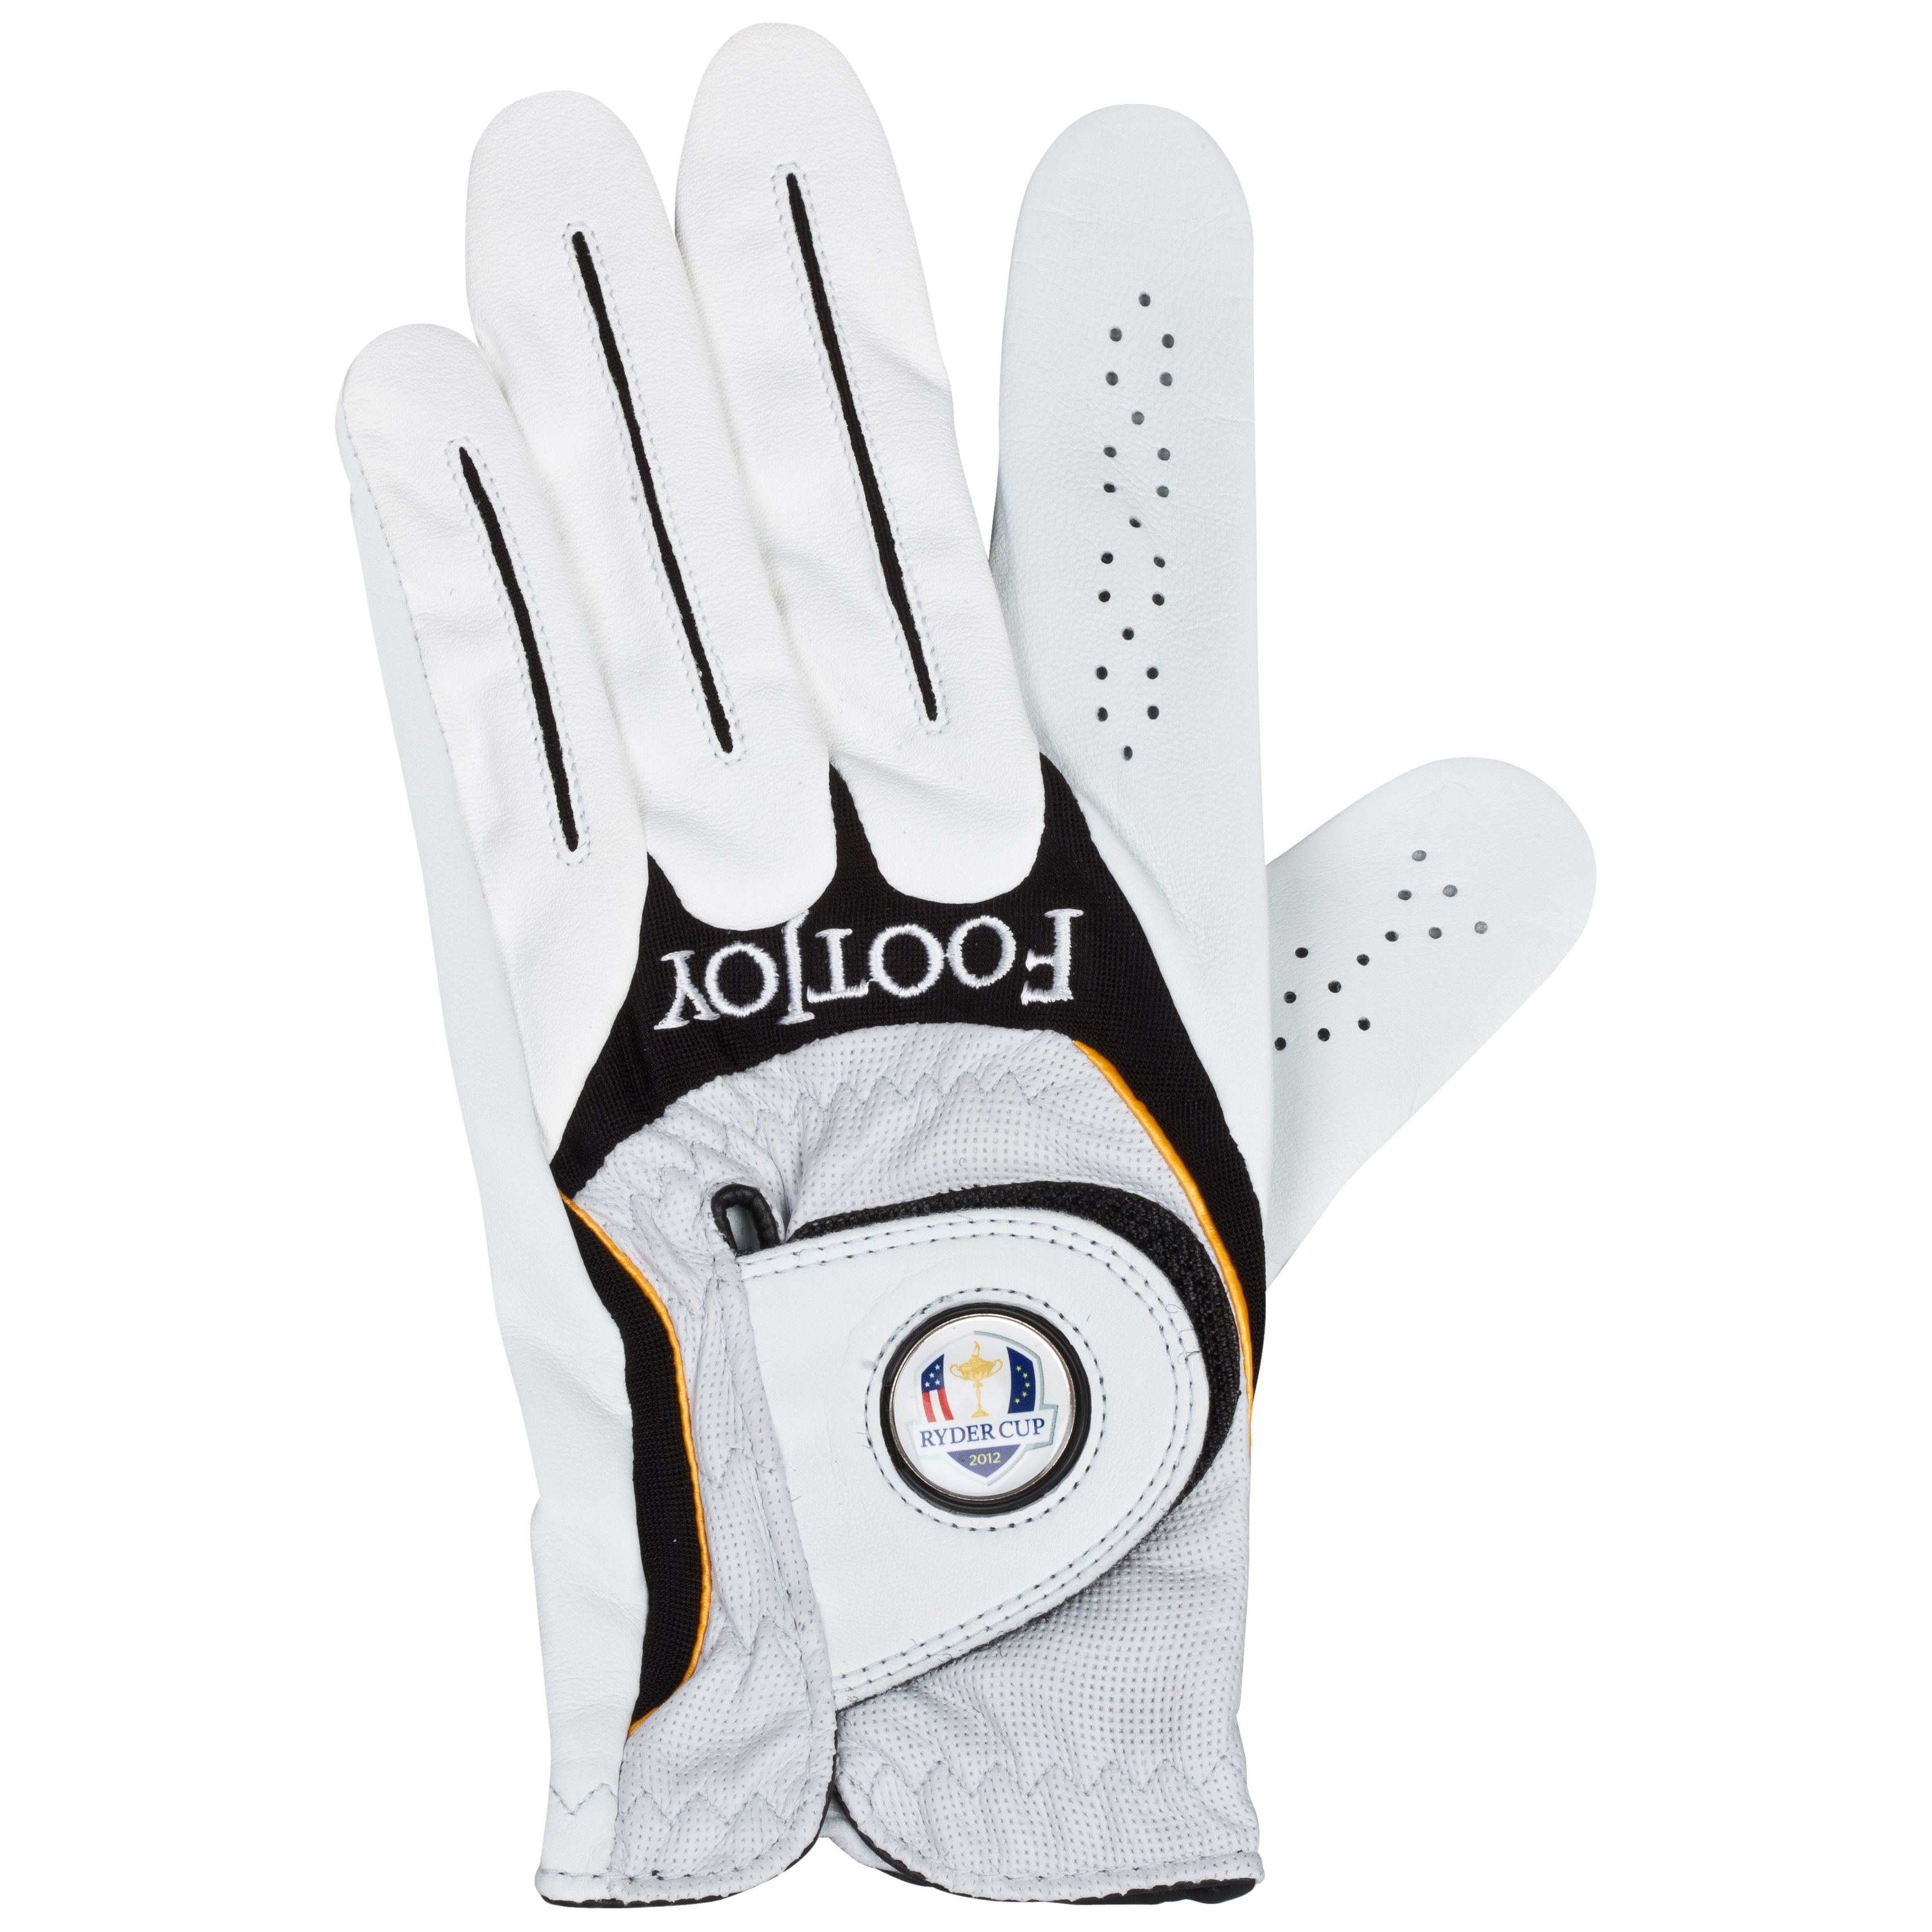 The 2012 Ryder Cup Medinah FootJoy Cabretta Leather Golf Glove